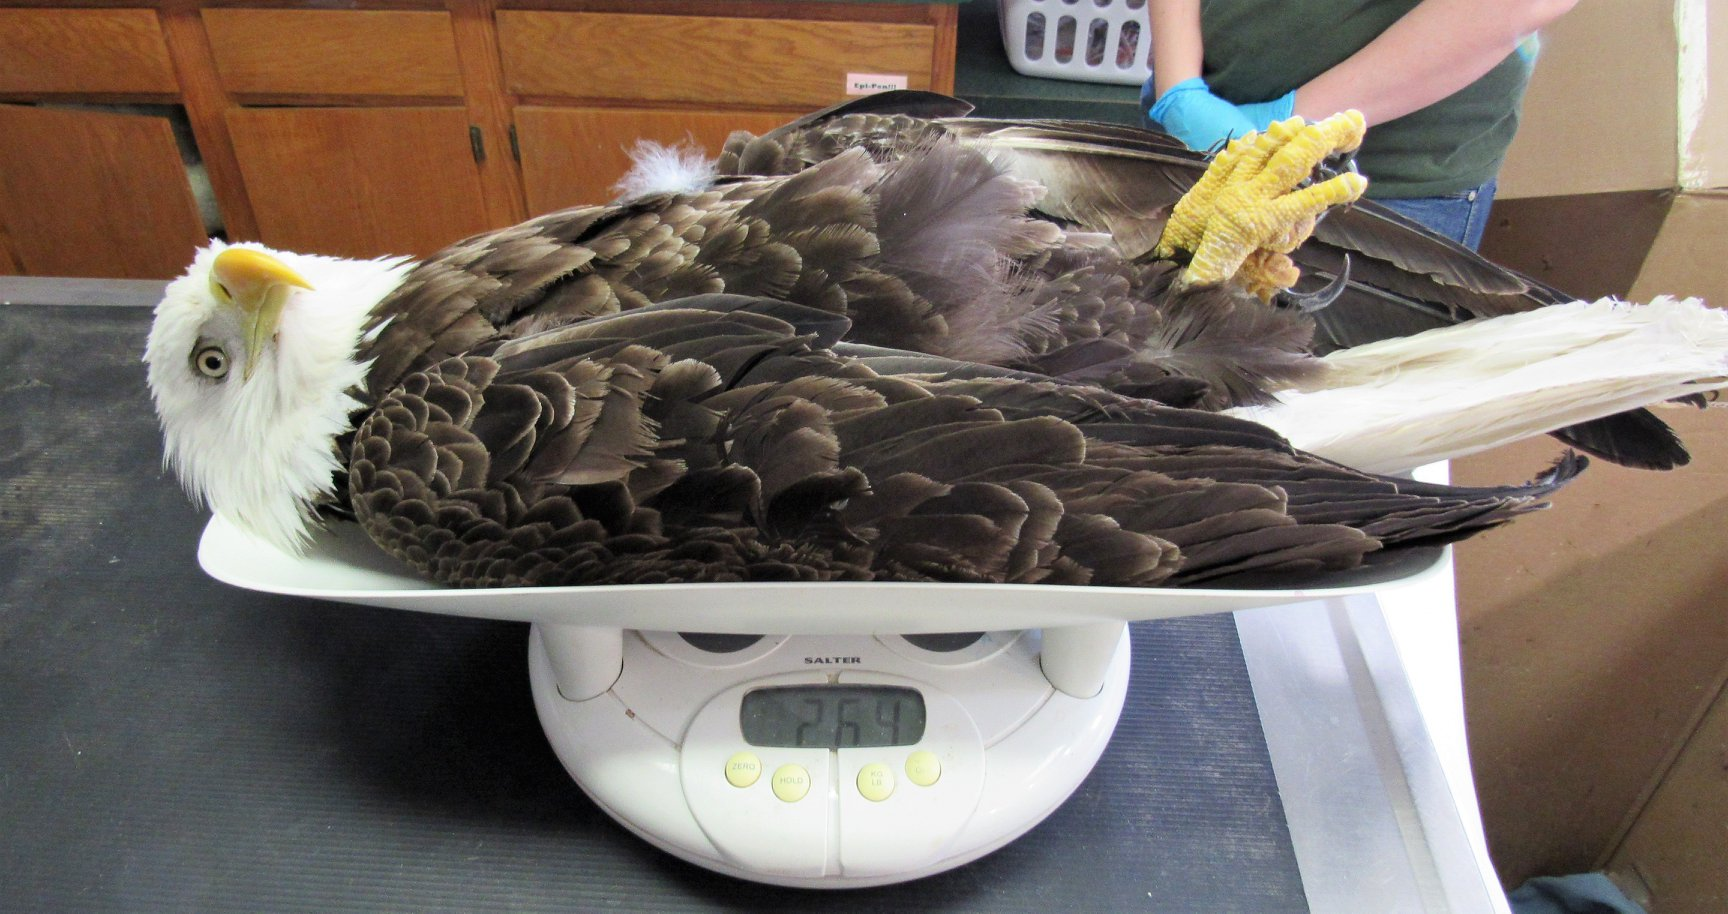 Bald Eagle with lead poisoning is very low in weight at 2.67 Kg or 5.8 lbs. He should weight 9-10 lbs